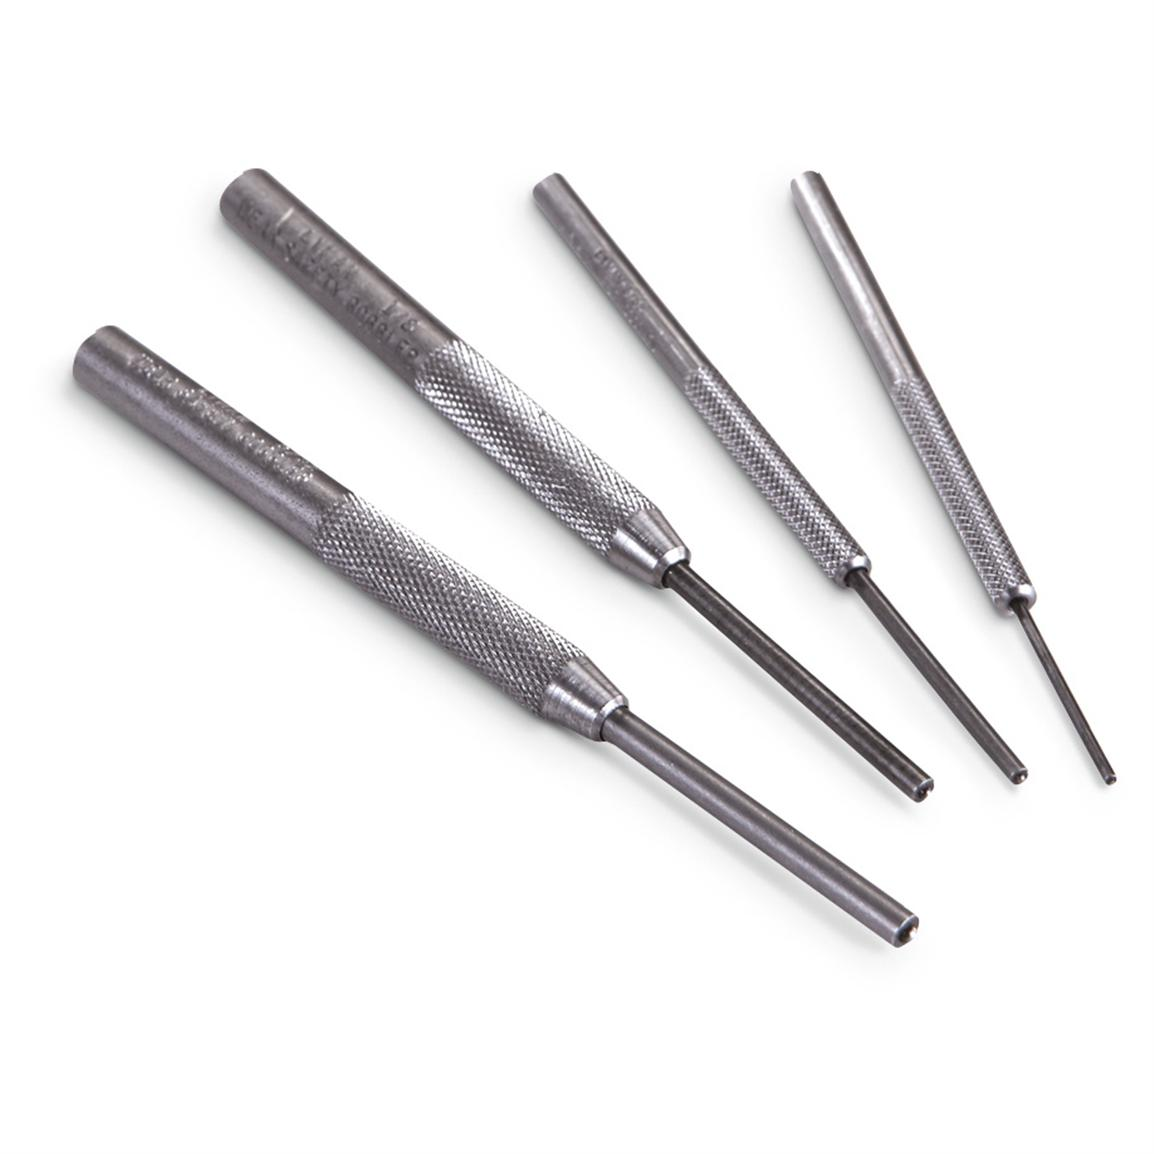 4-Pc. Roll Pin Punch Set